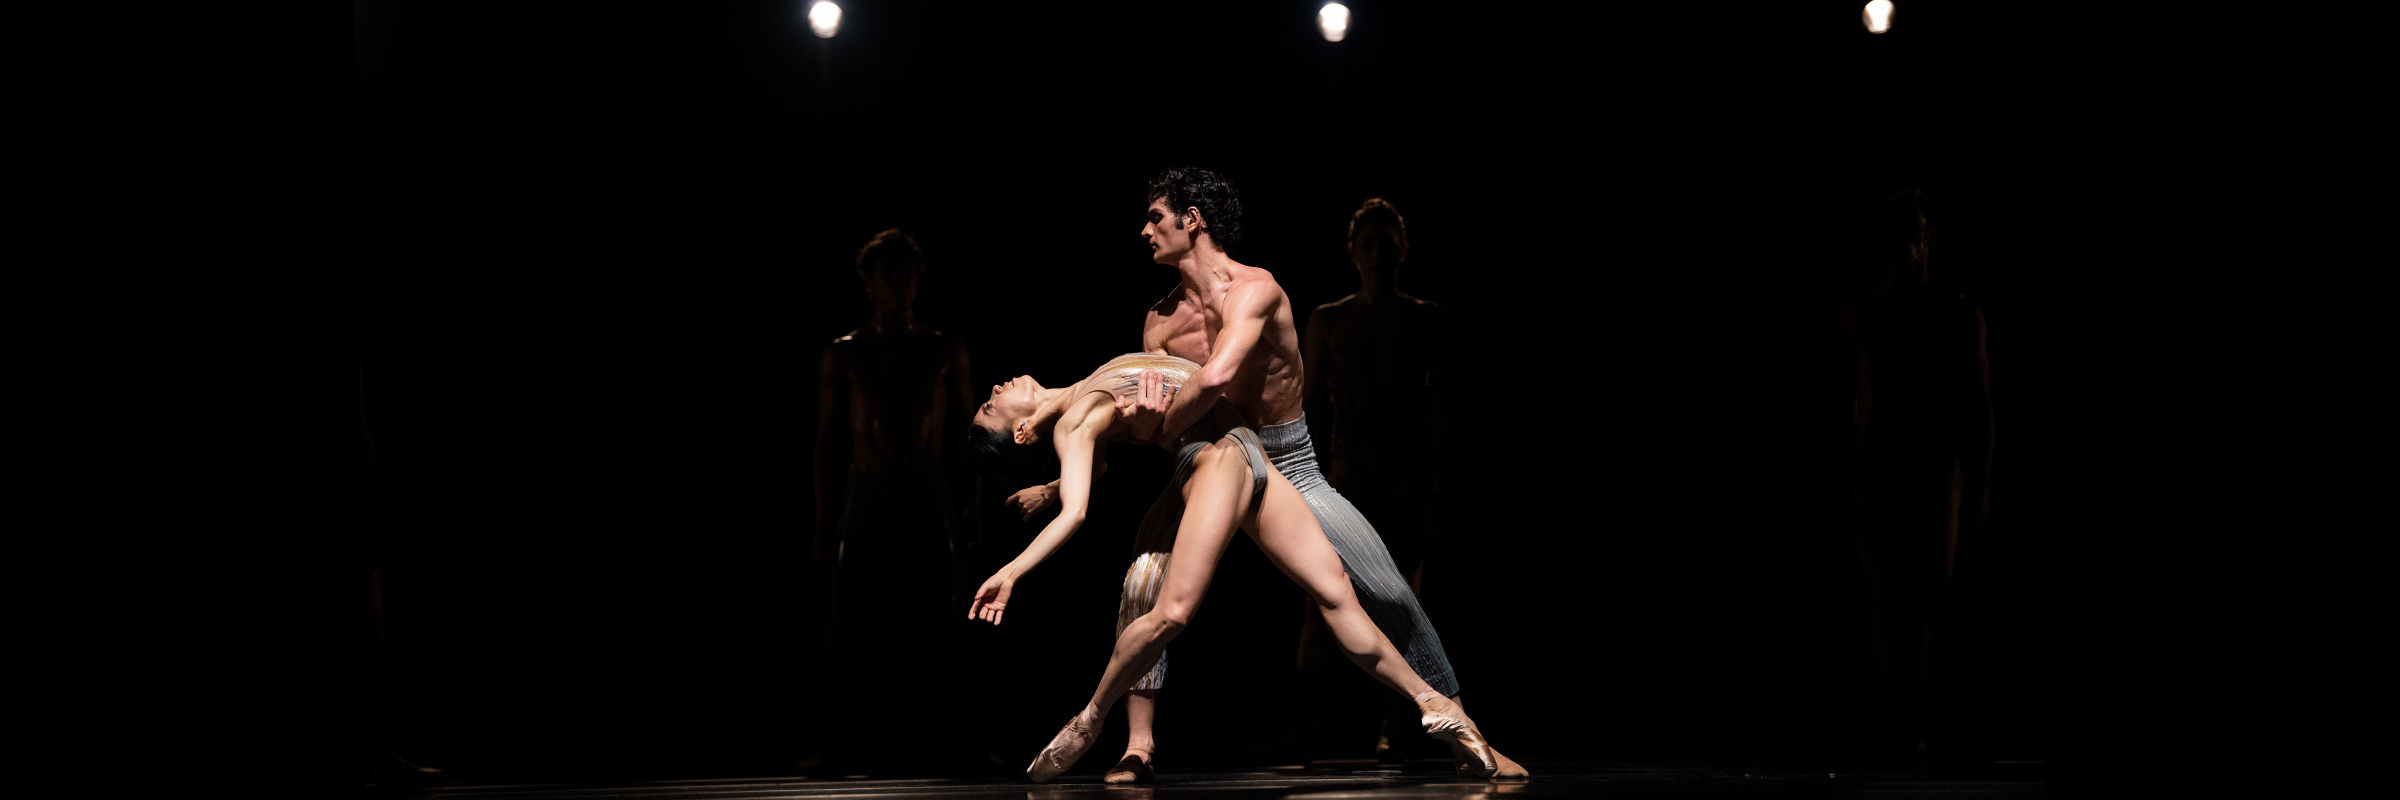 In a pool of light, a male dancer holds a female dancer in his arms as she arches her back, arms outstretched and feet pointed